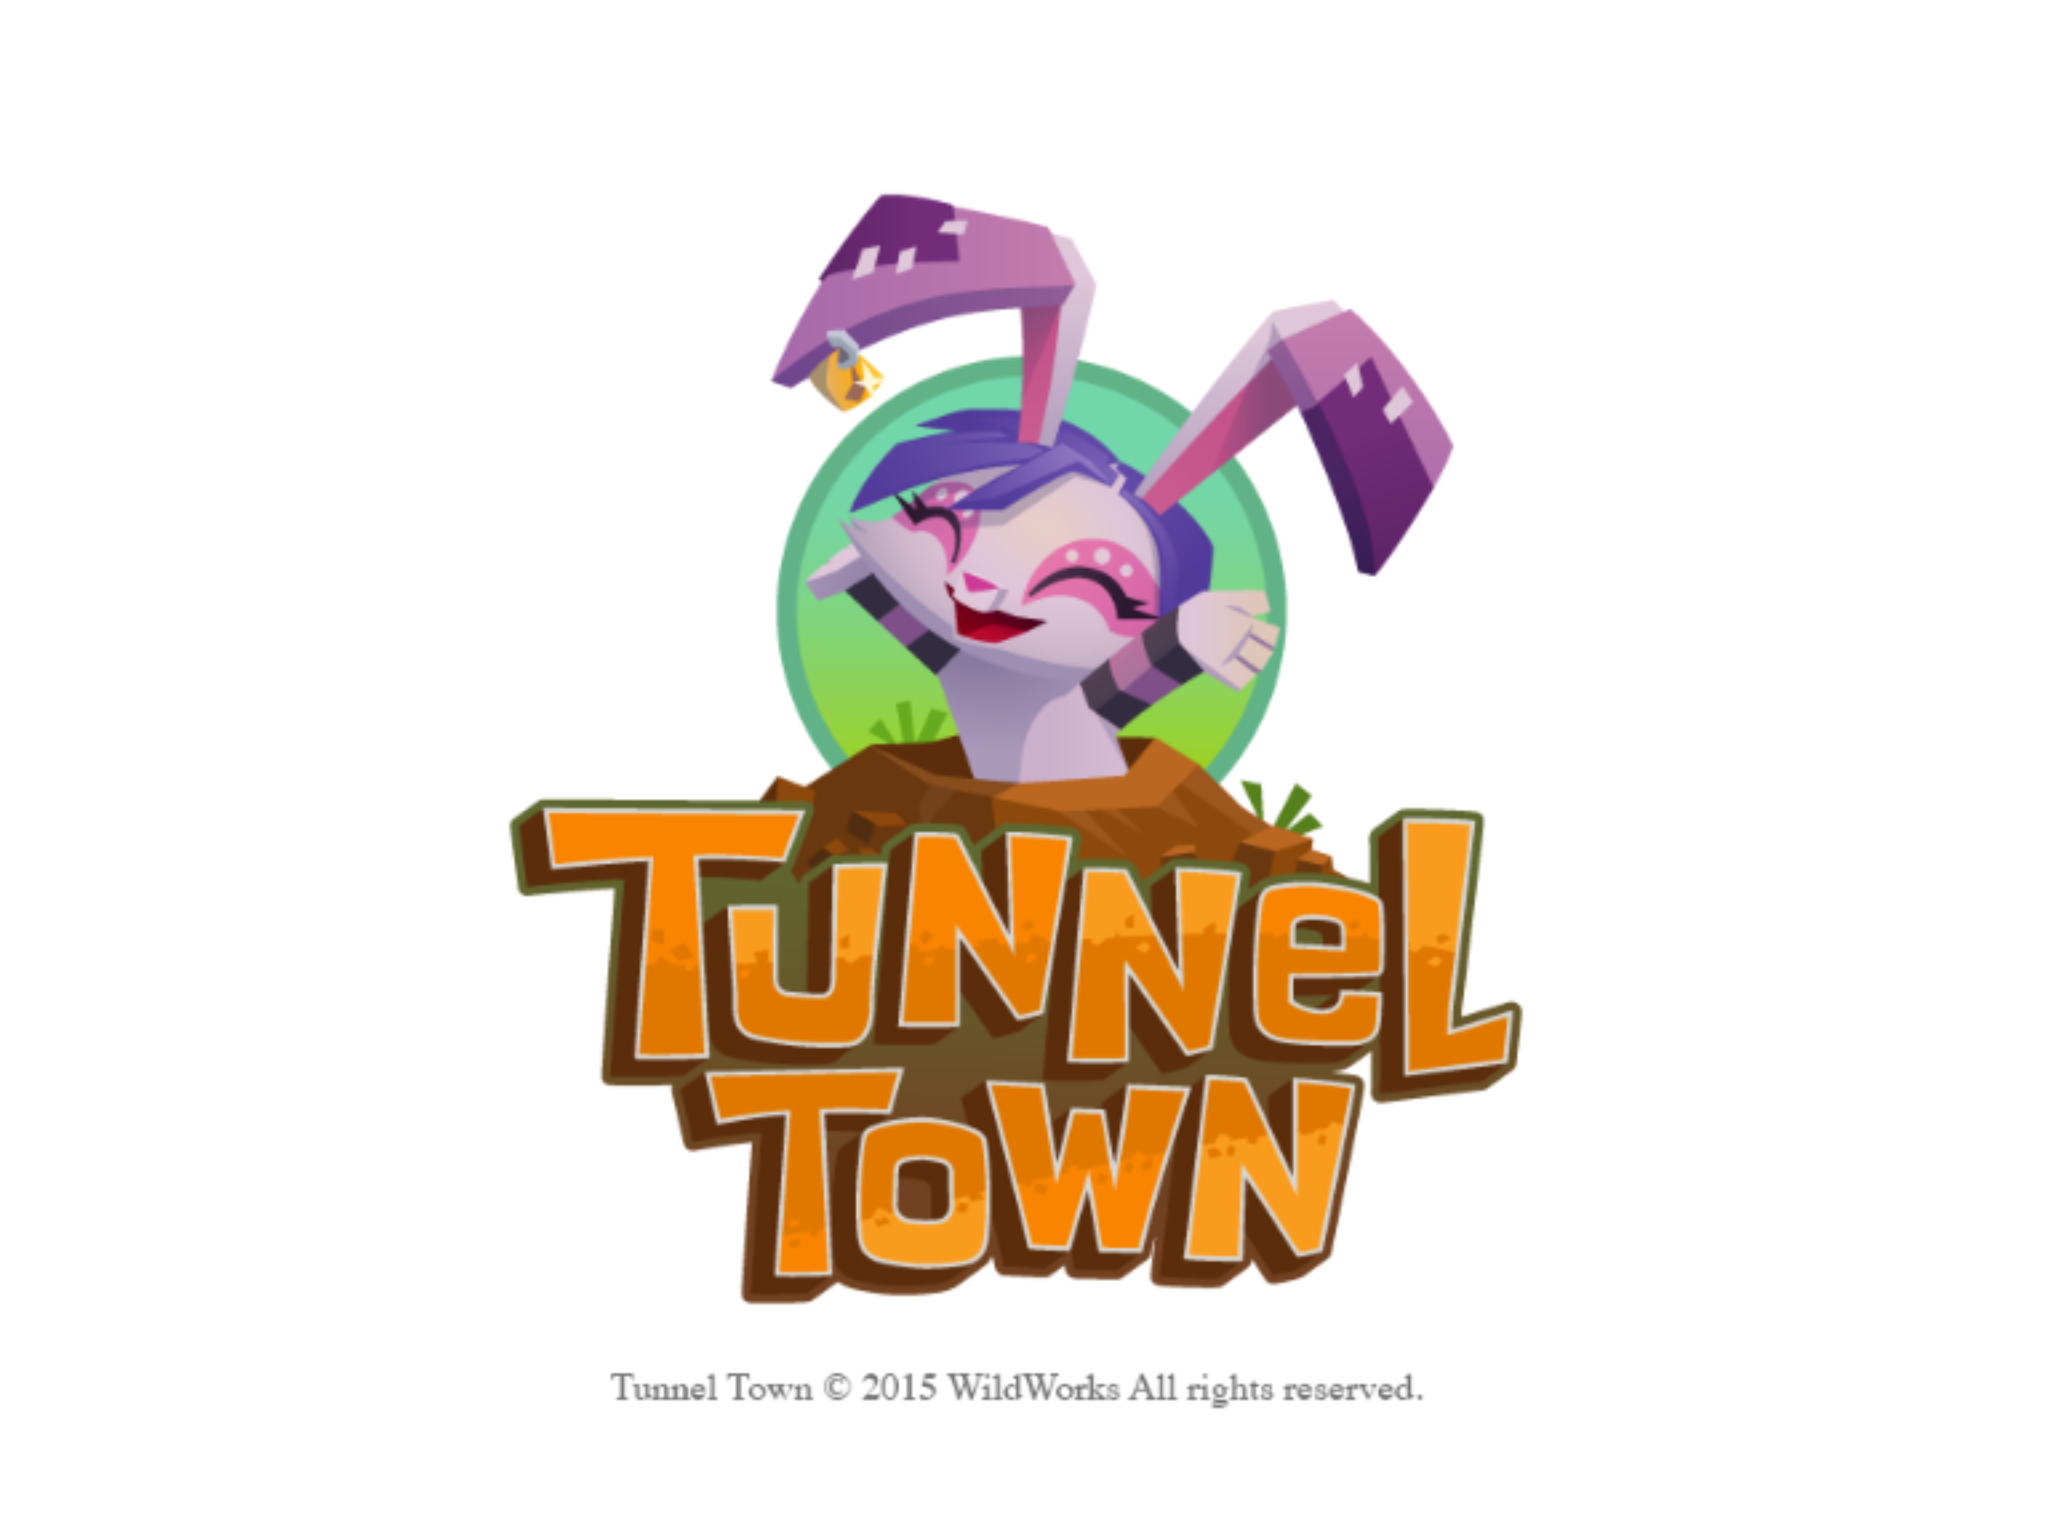 Do you play tunnel town?